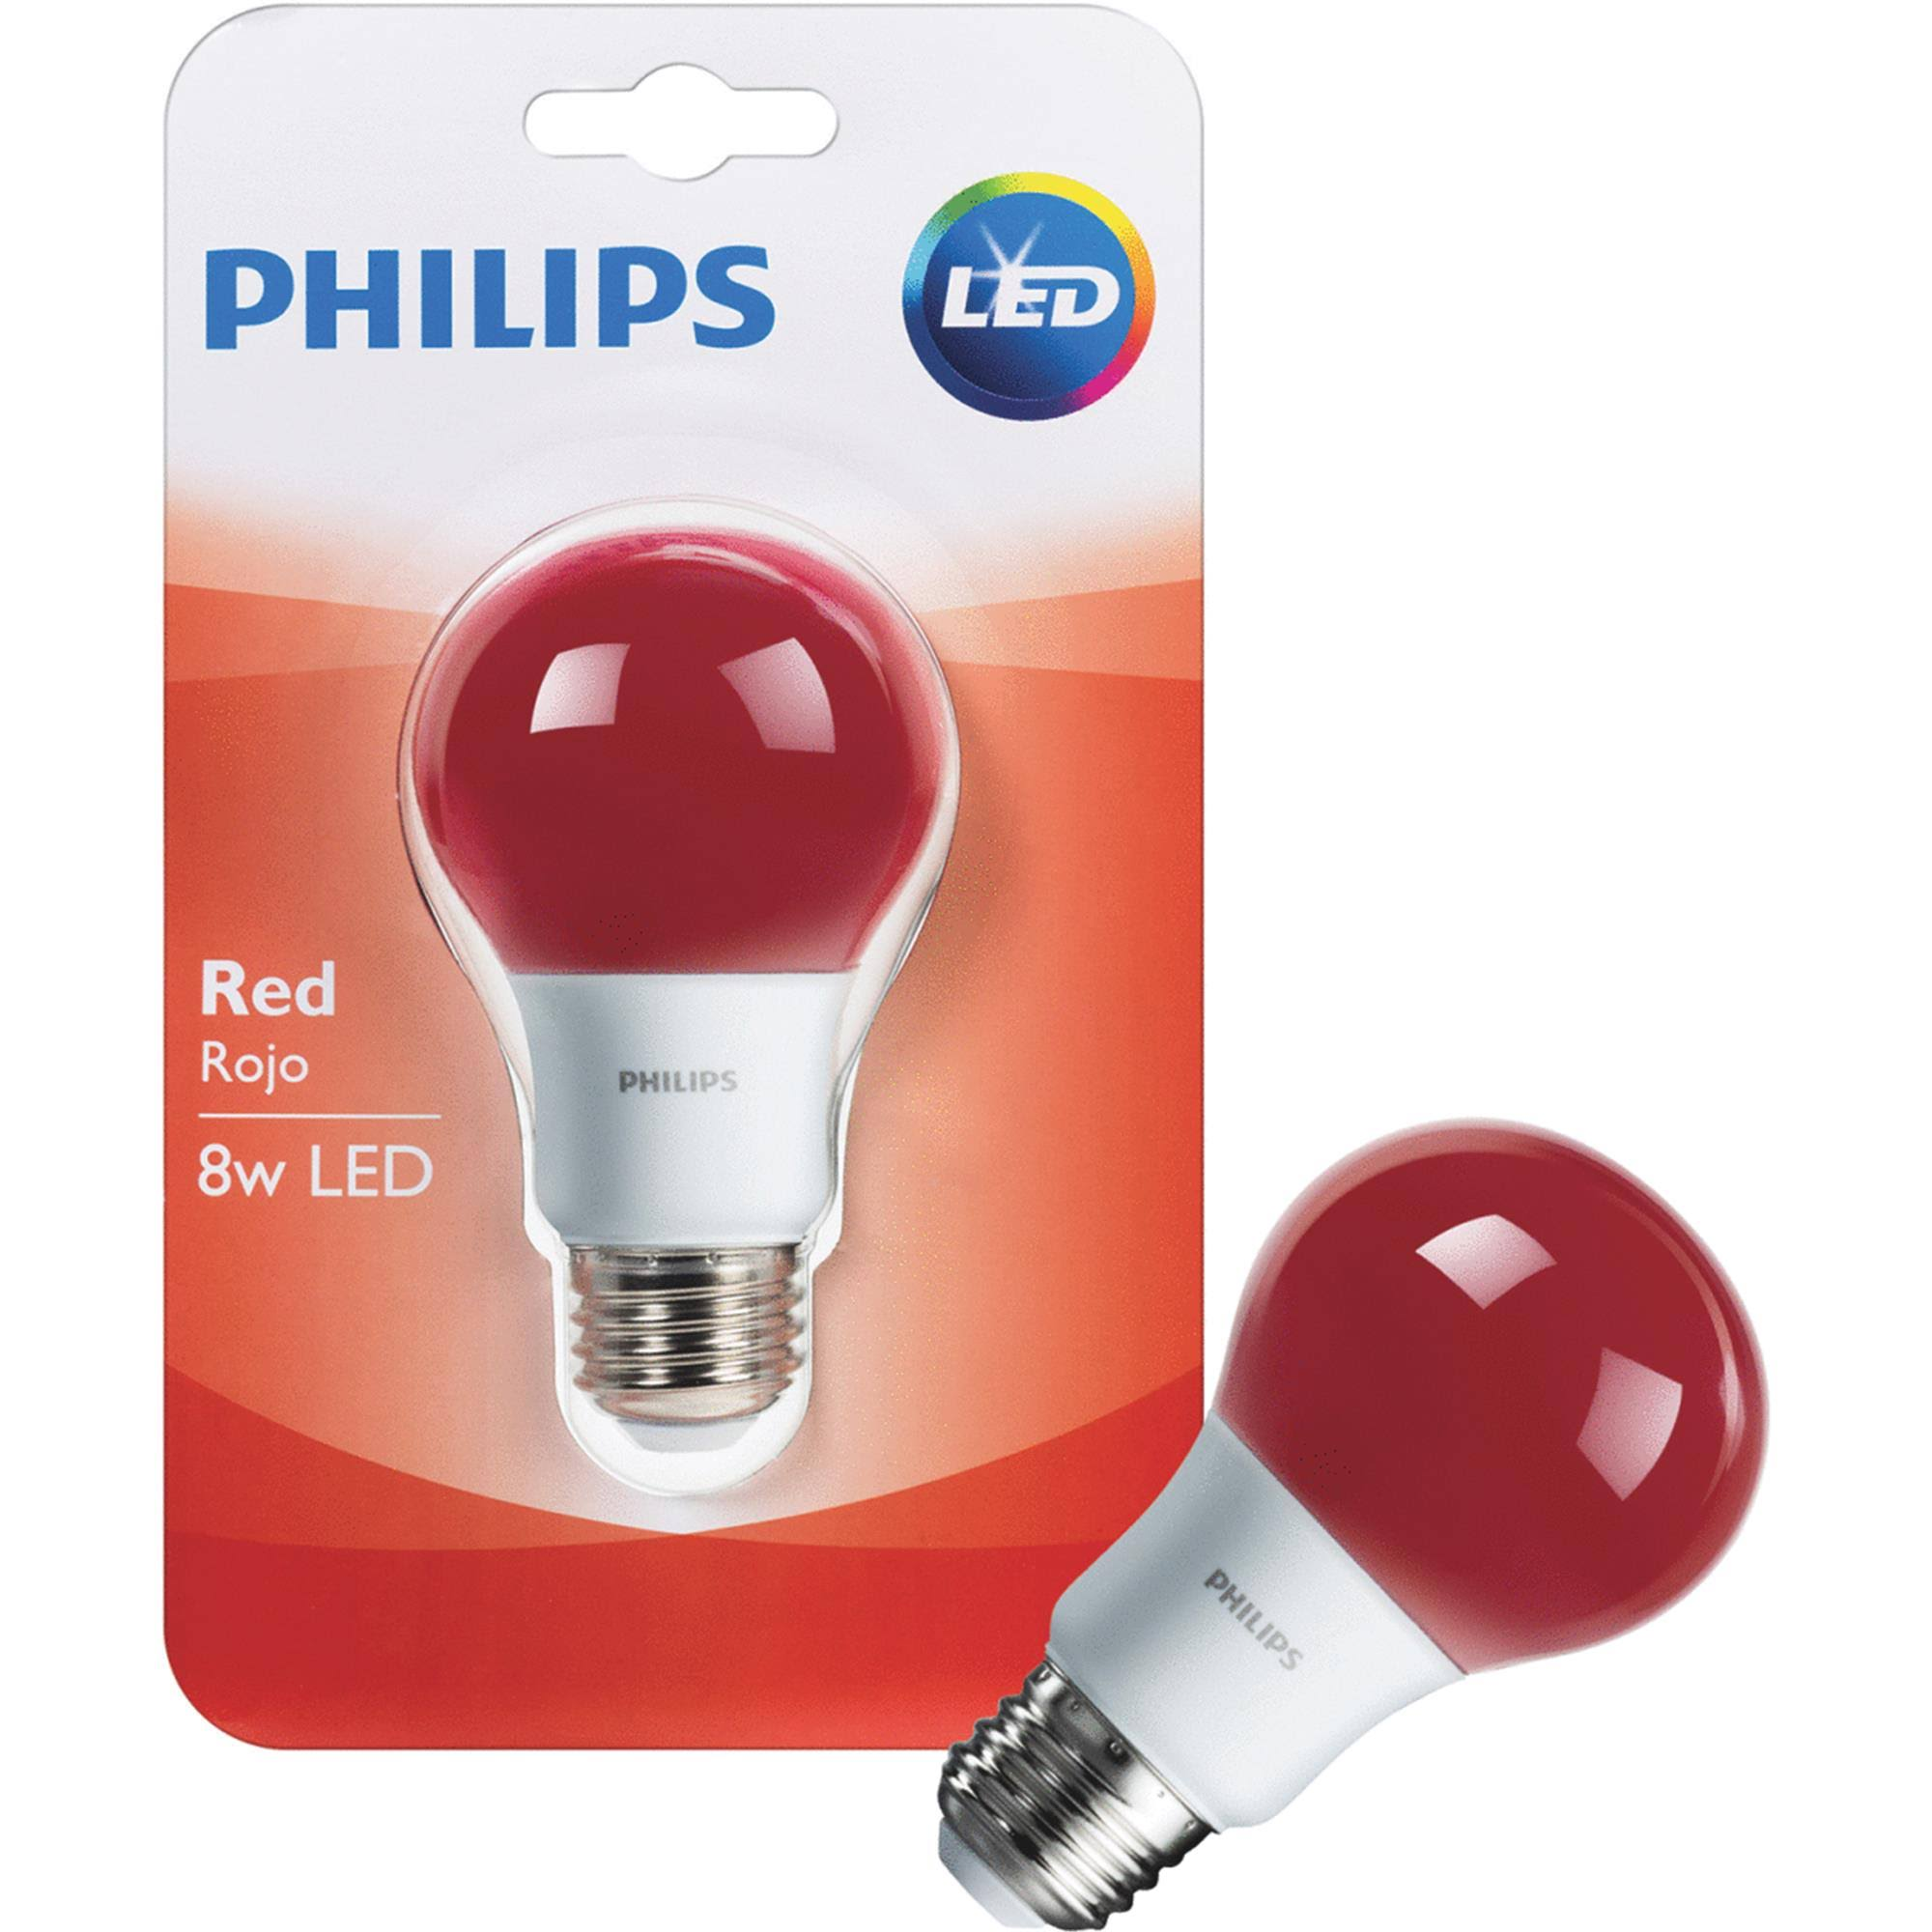 Philips Led Light Bulb - Red, A19, 8W